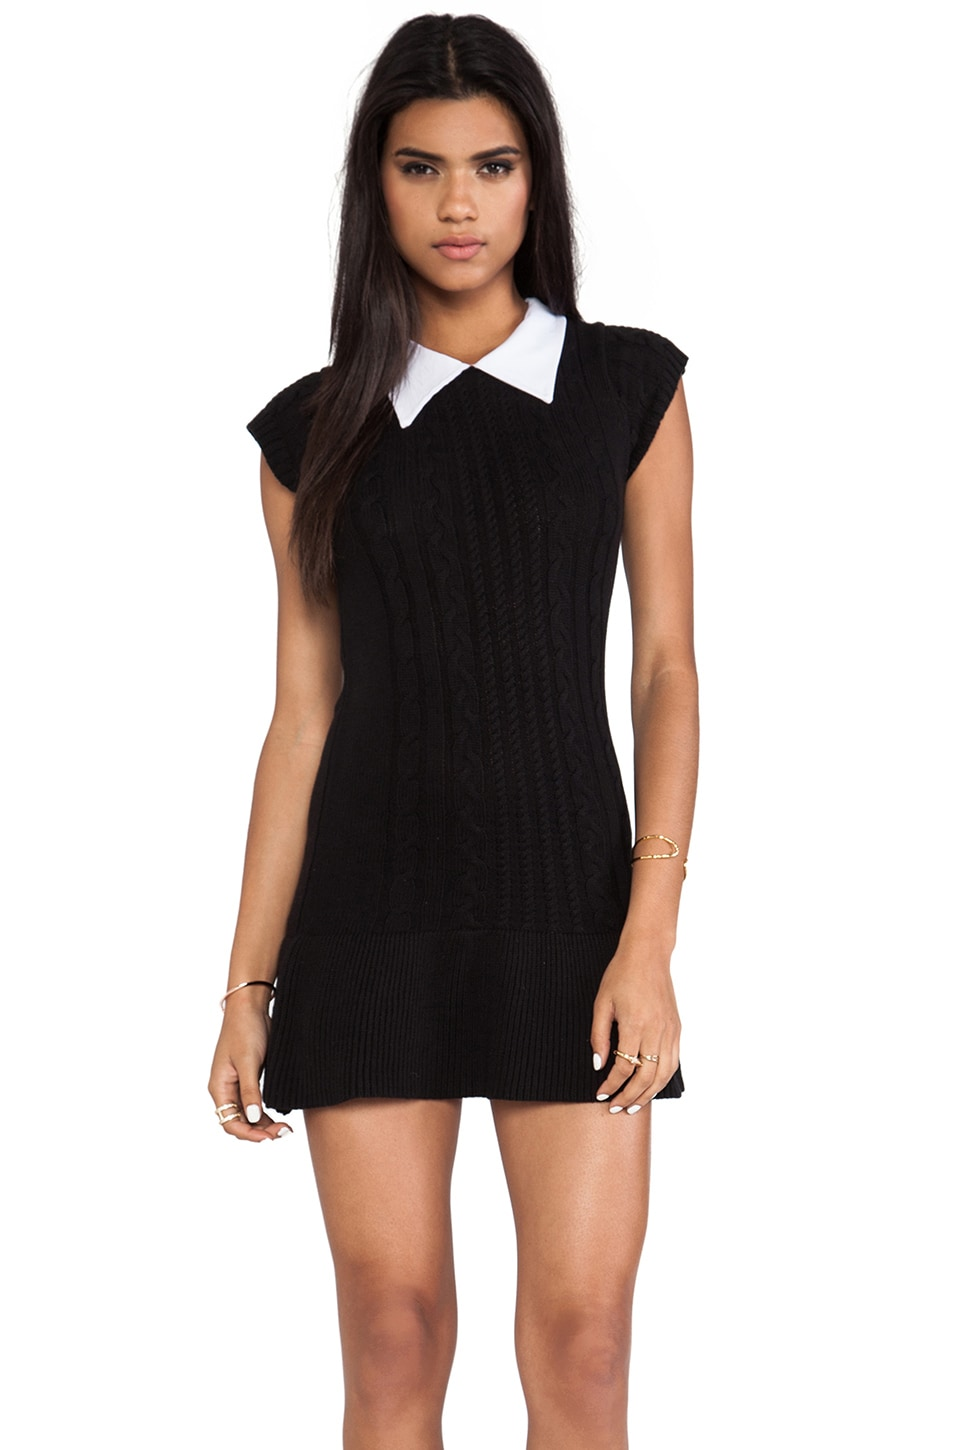 UNIF Licit Dress in Black